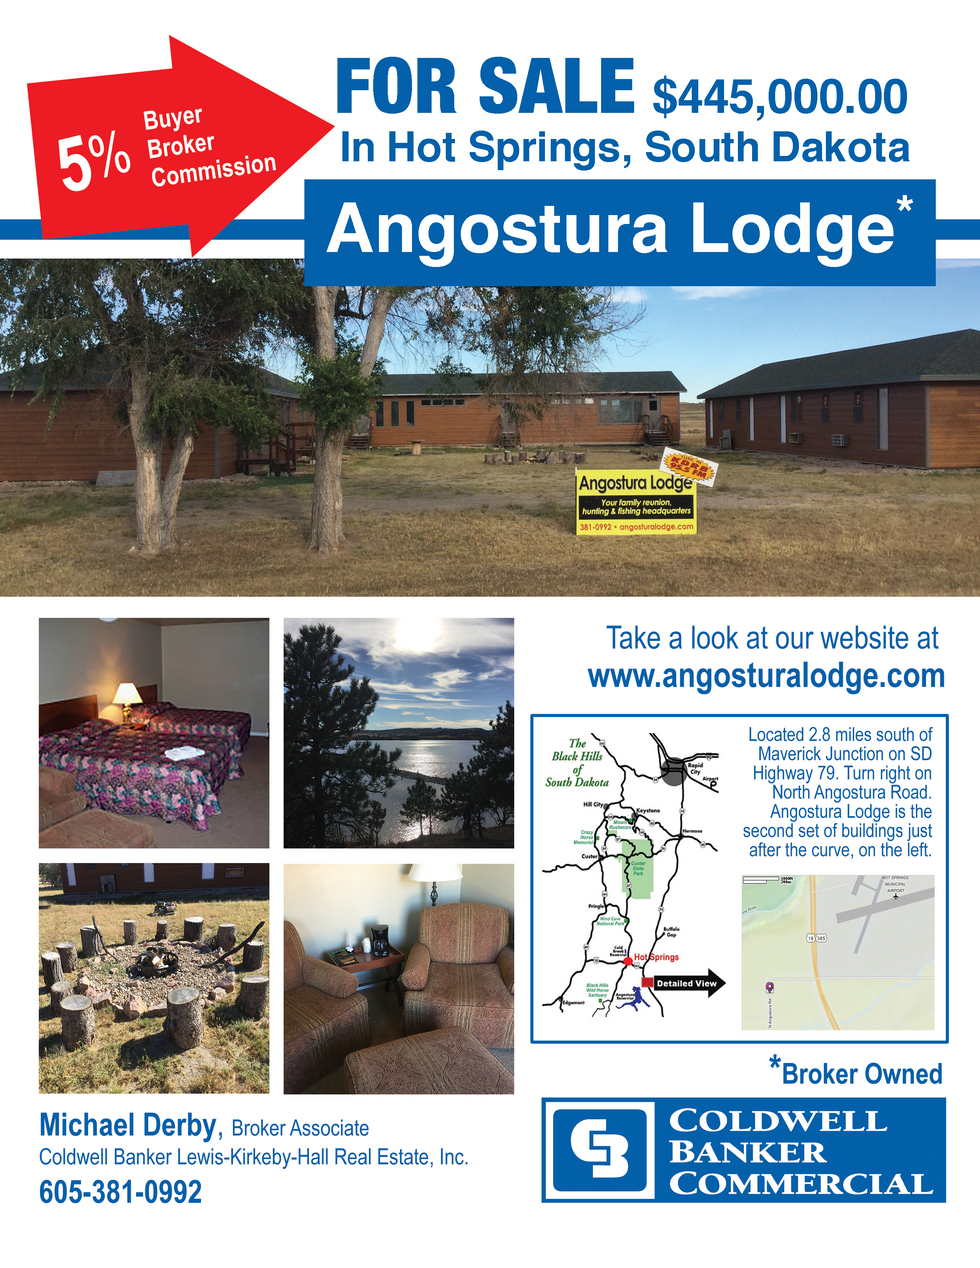 Angostura Lodge For Sale Flyer copy.png